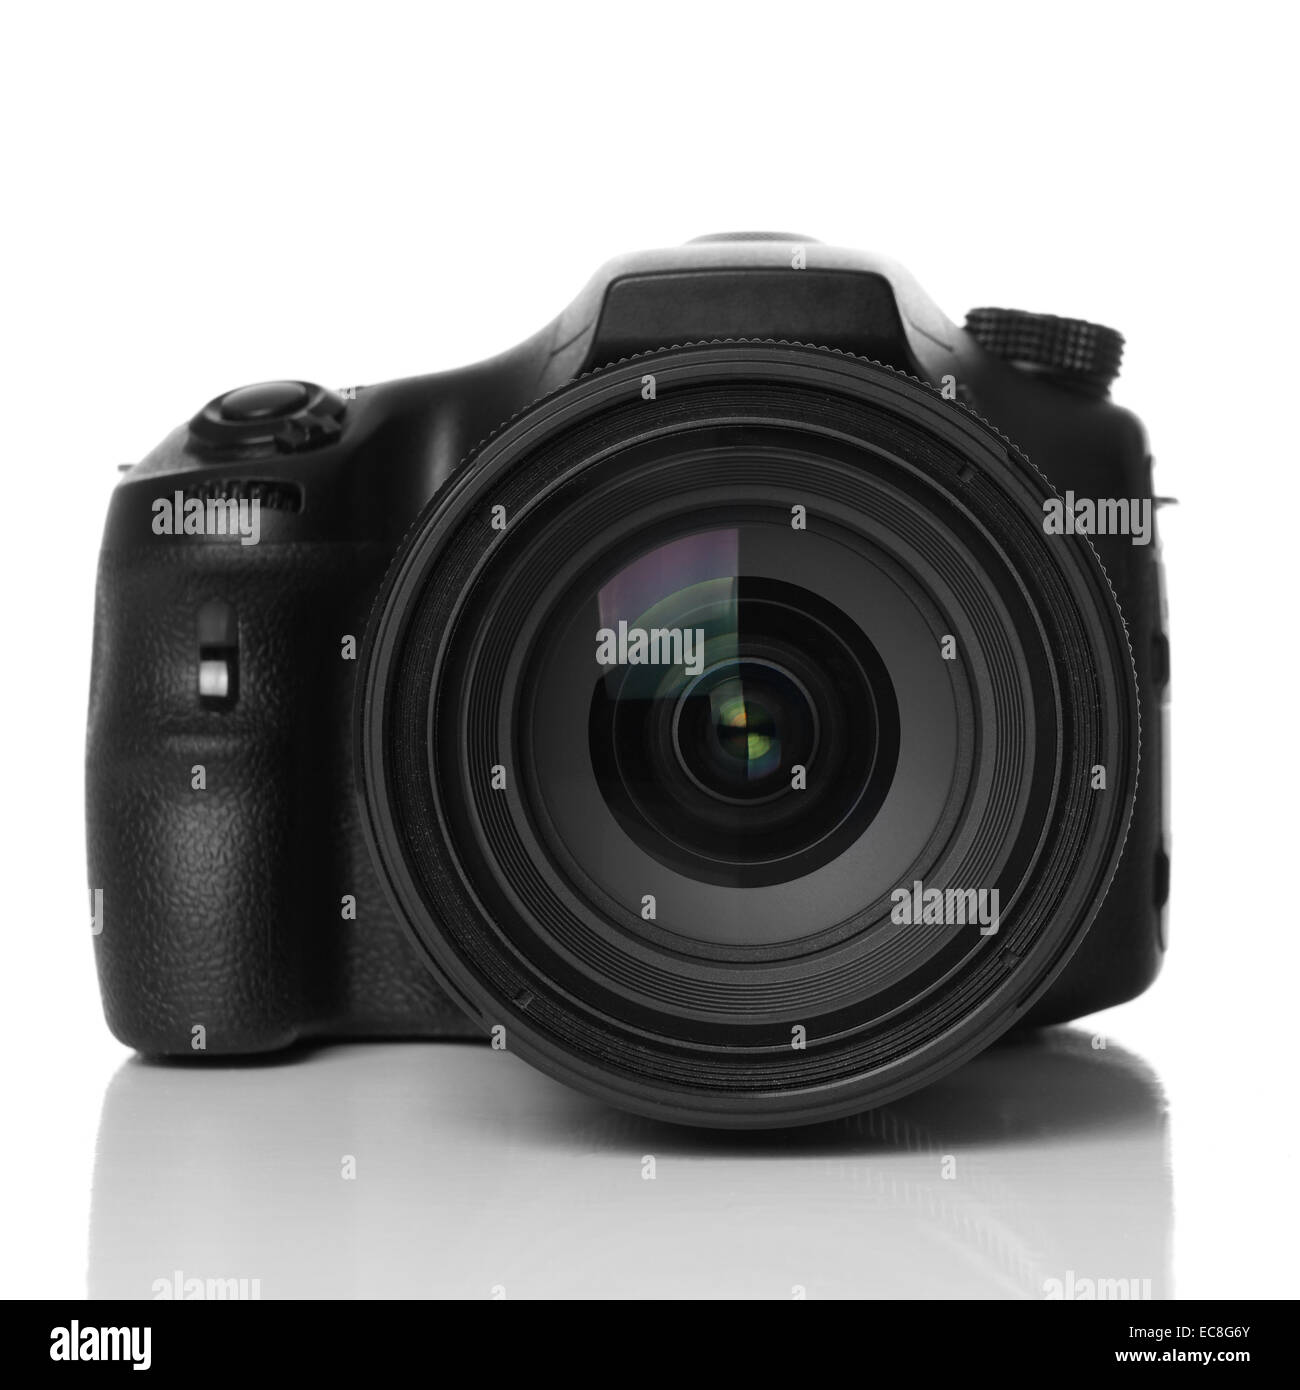 DSLR camera - Stock Image